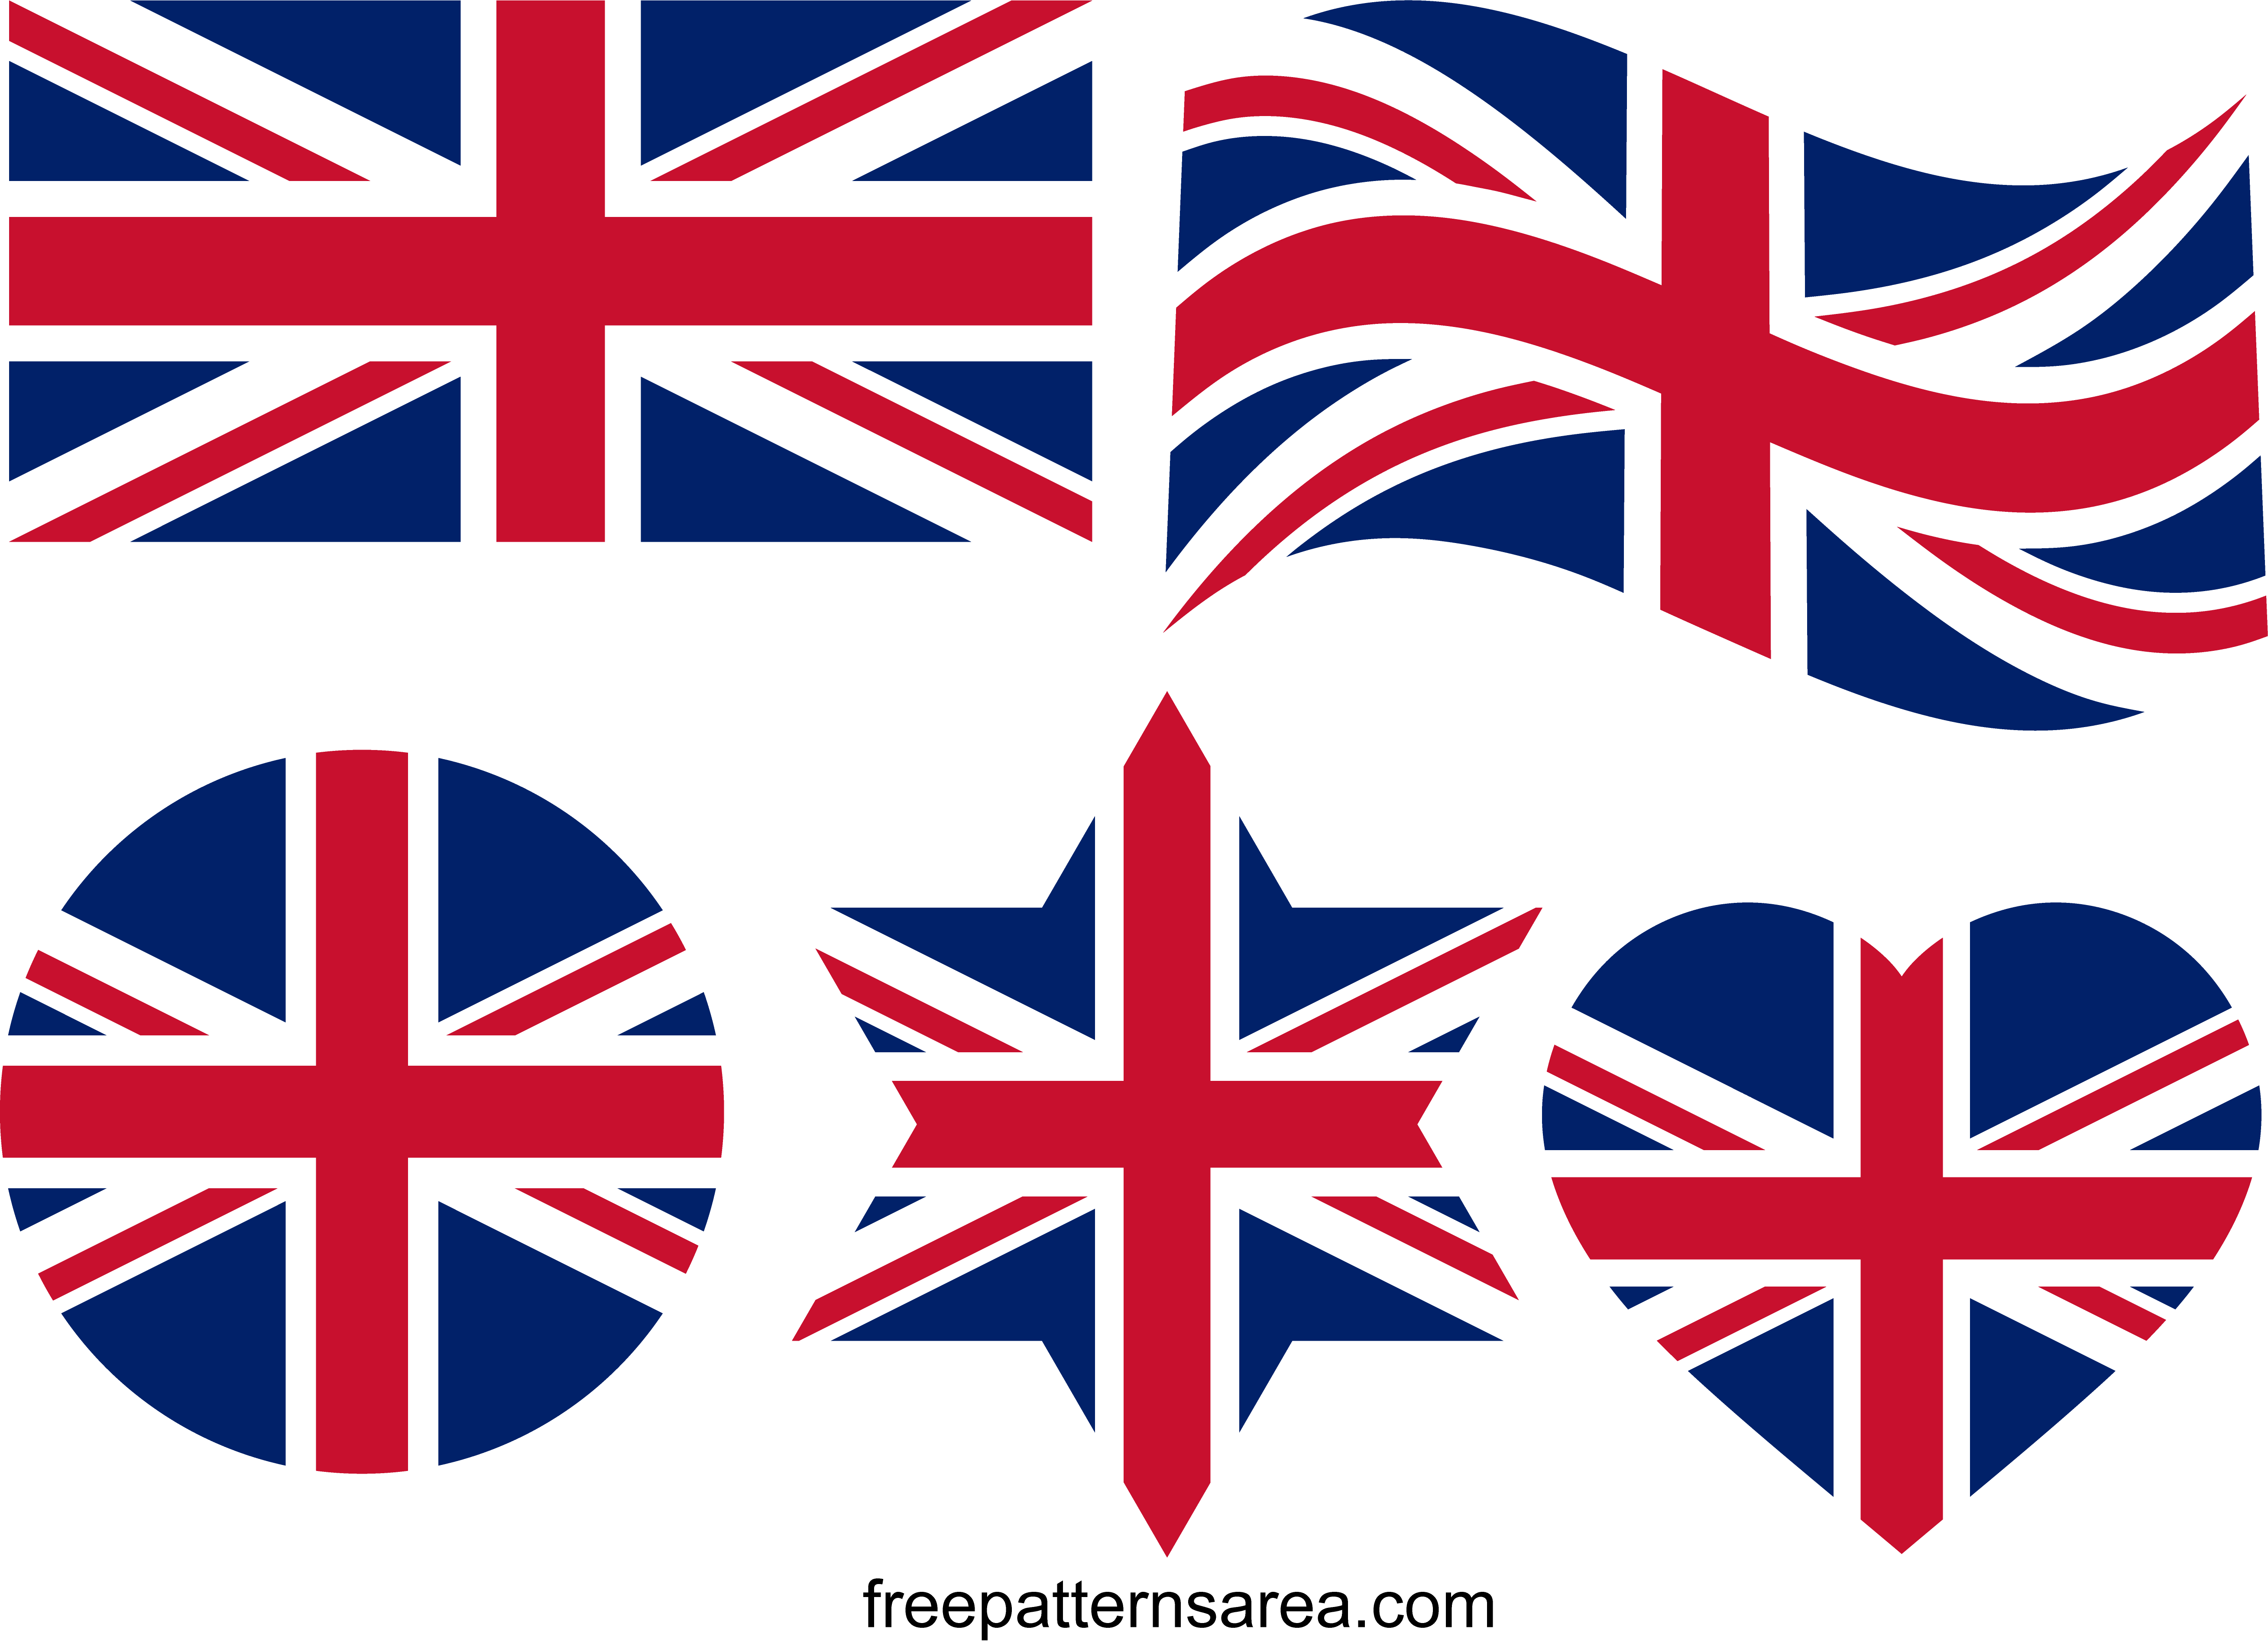 12 best photos of union jack images for printing union jack.